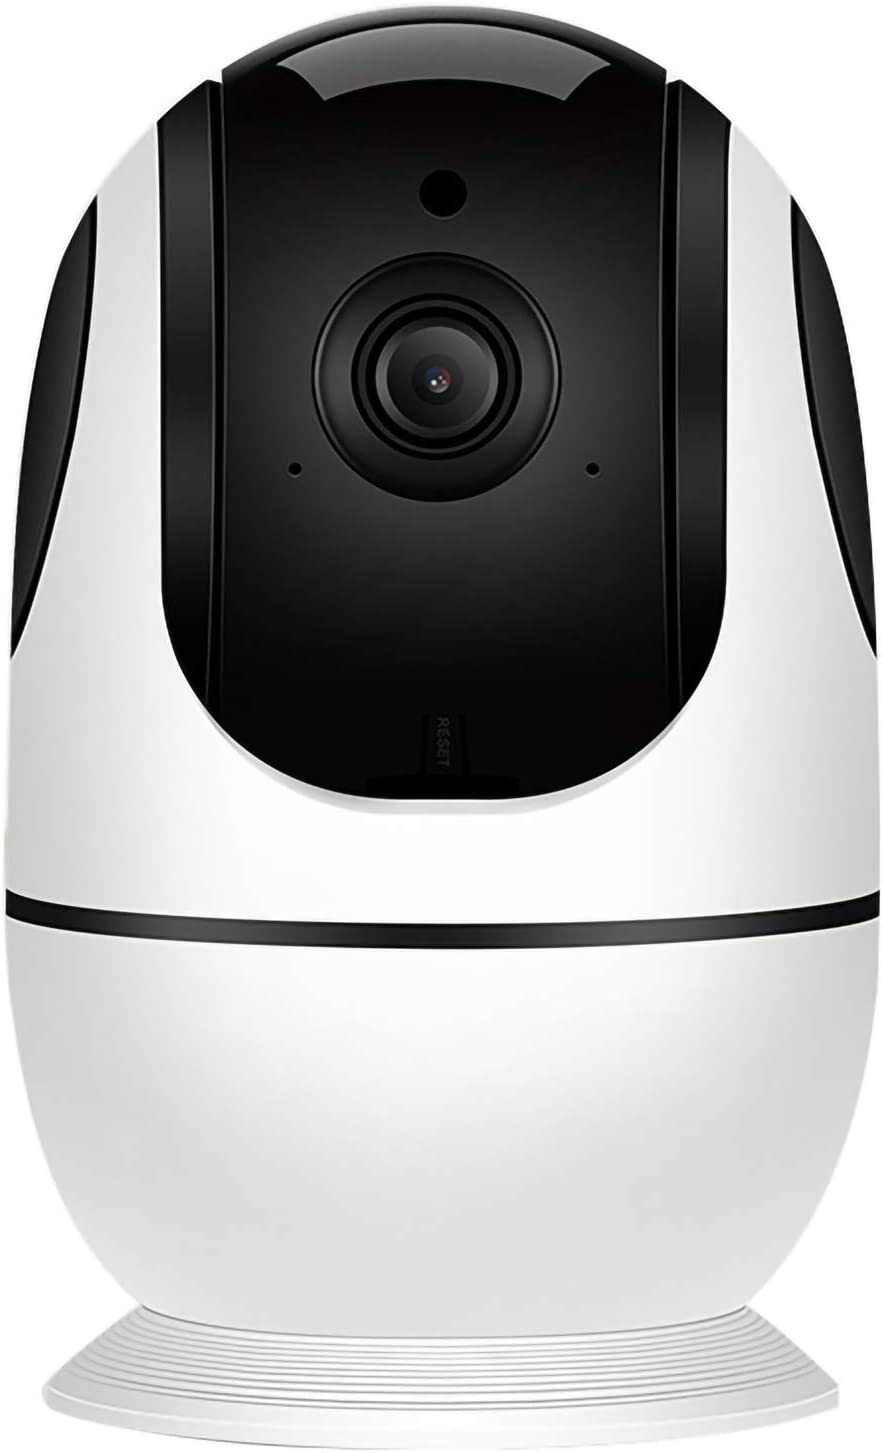 zmtzl Baby Monitor 360-degree Wi-Fi Home PTZ Security Camera Ind Sale Max 76% OFF price